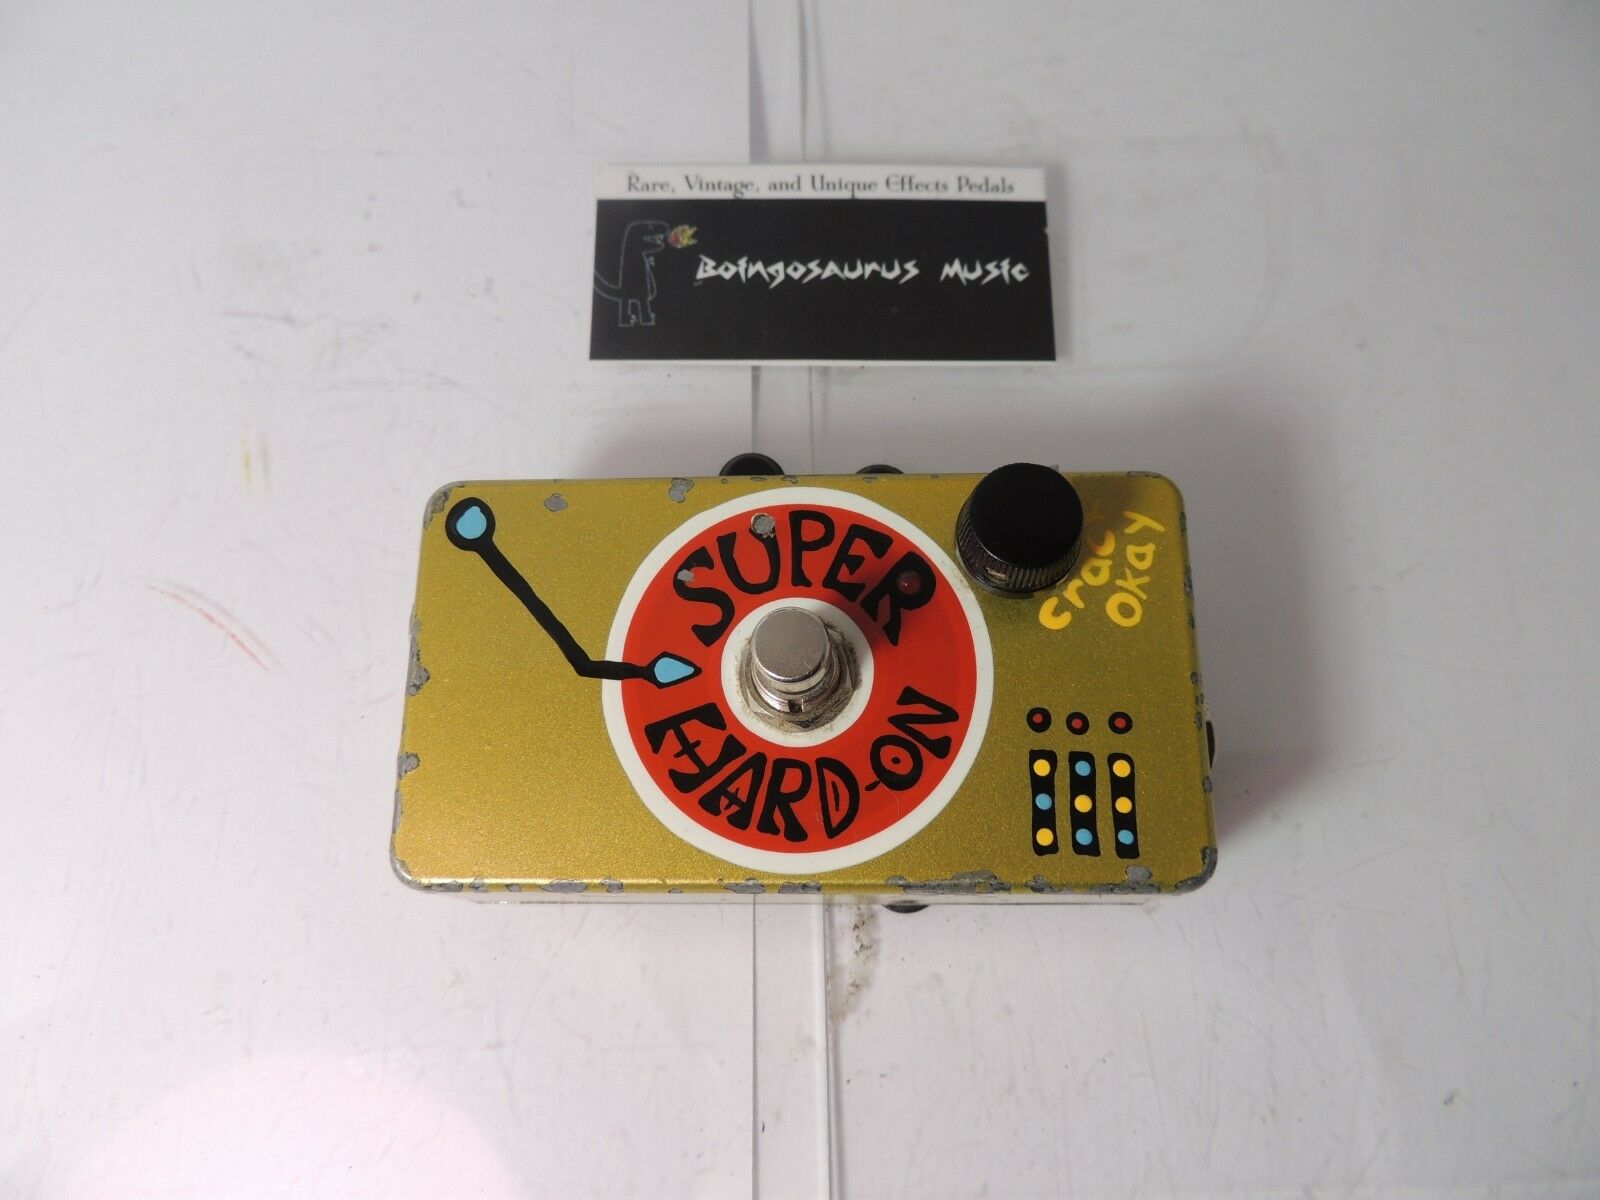 2006 ZVex Super Hard On Compressor Effects Pedal Original Hand Painted